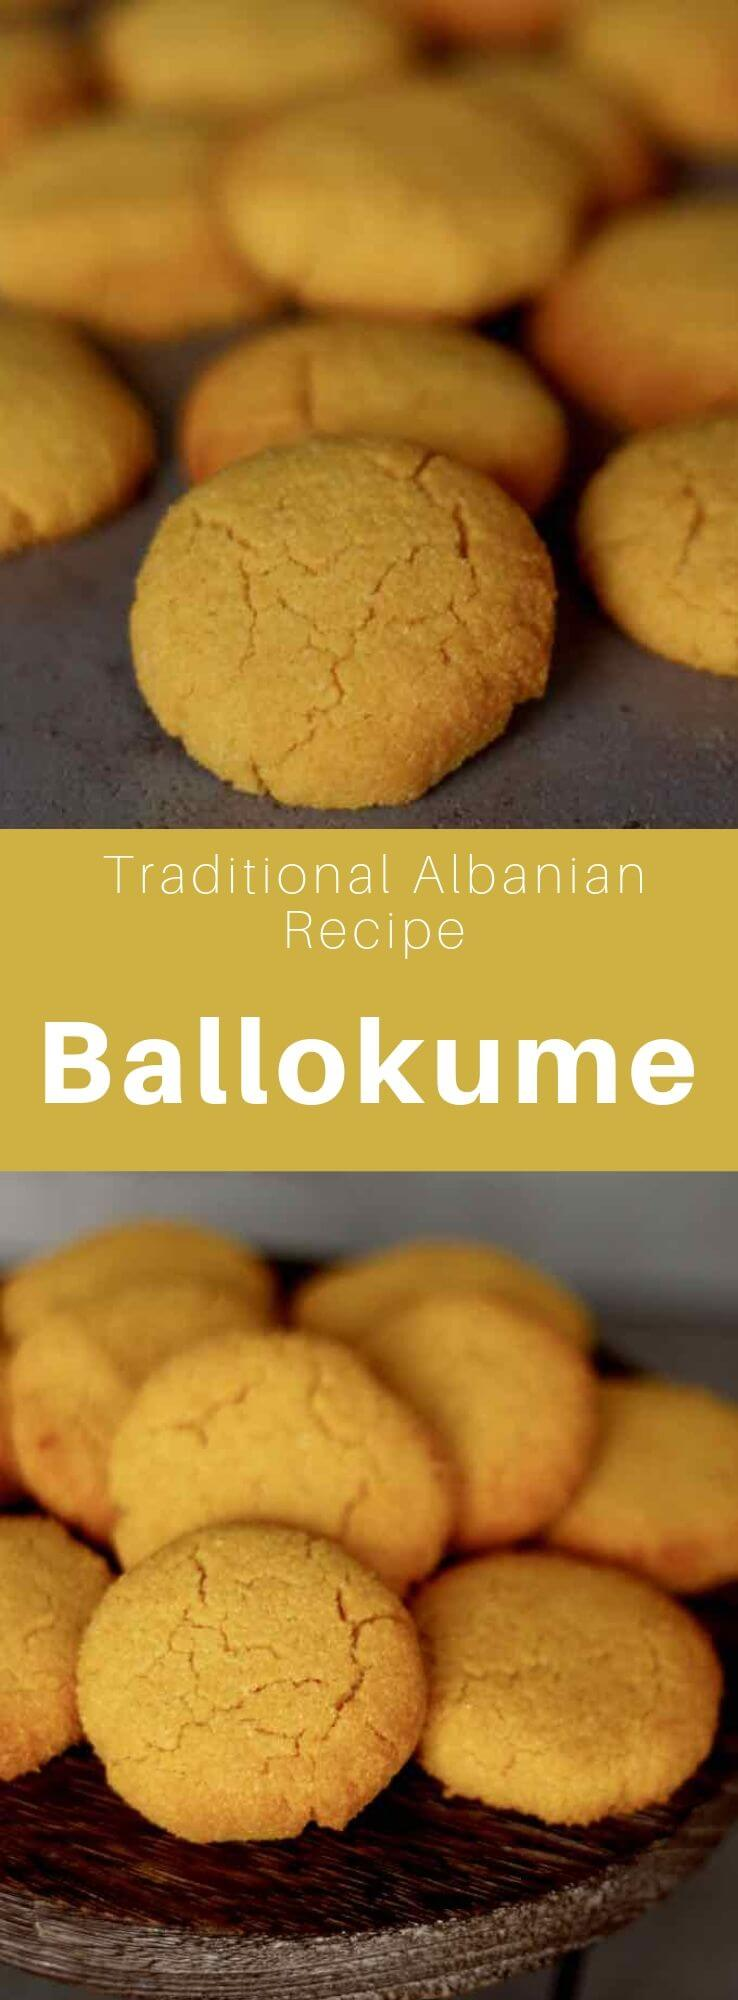 Ballokume is a traditional Albanian biscuit from the city of Elbasan, prepared from cornmeal, eggs, sugar, and butter and traditionally eaten on March 14th during Dita e Verës (Summer day). #Albania #AlbanianRecipe #AlbanianCuisine #DitaEVeres #Balkans #WorldCuisine #196flavors